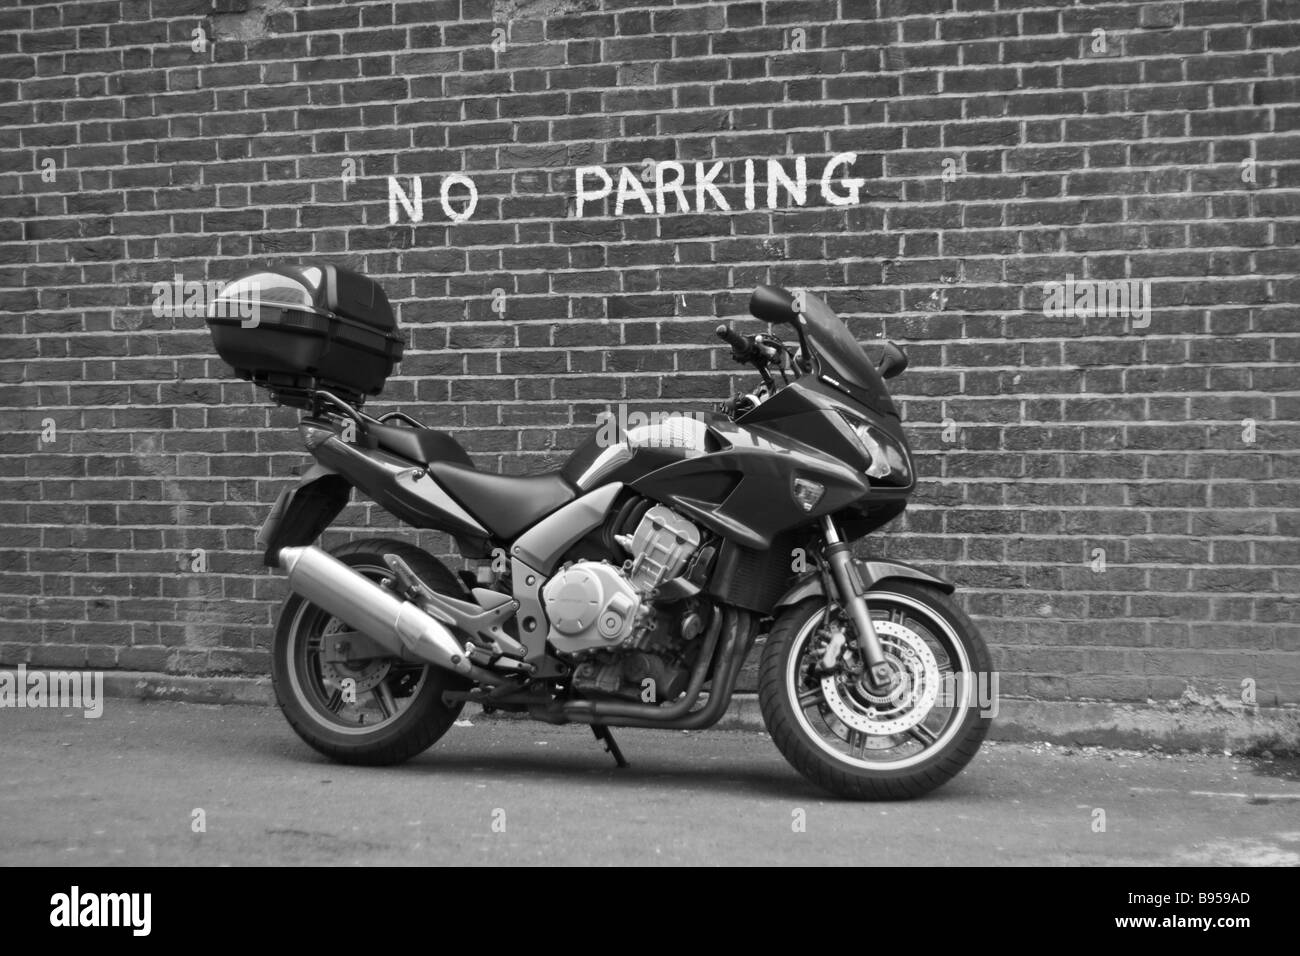 Motorcycle parked in a space labeled 'No Parking'. - Stock Image